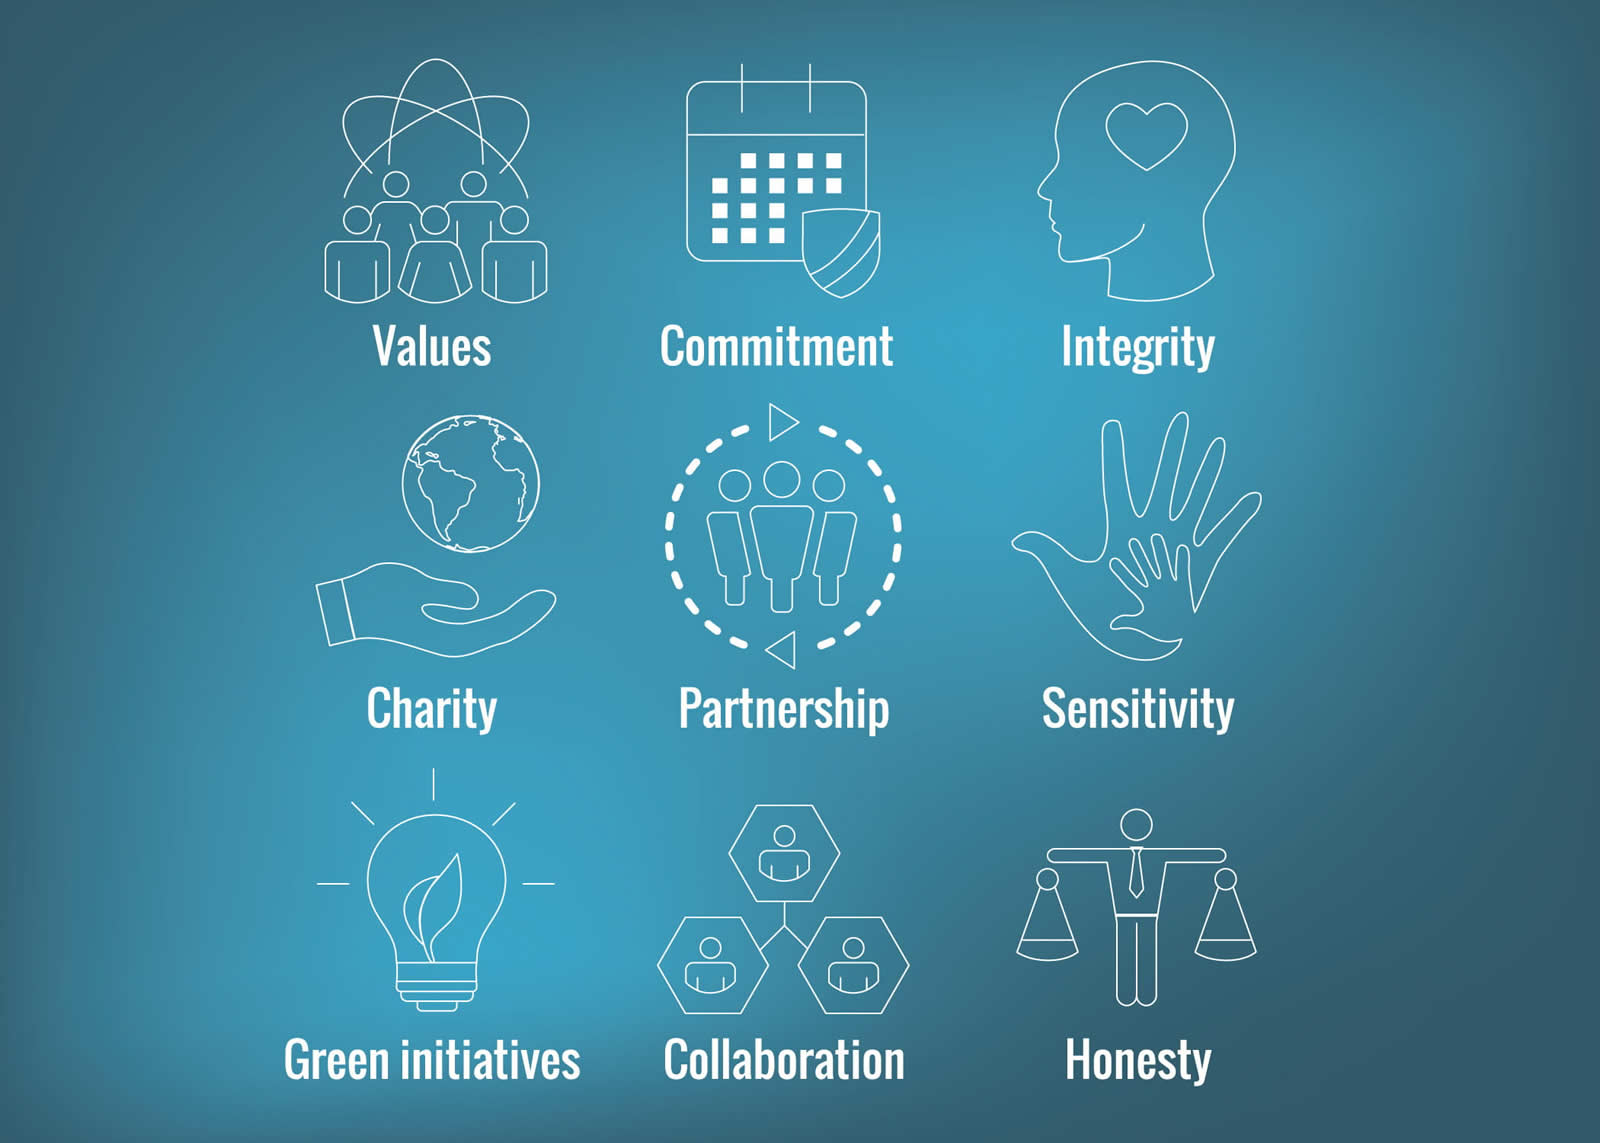 naem-2018-qanda-social-responsibility-outline-icon-set-honesty-700x500